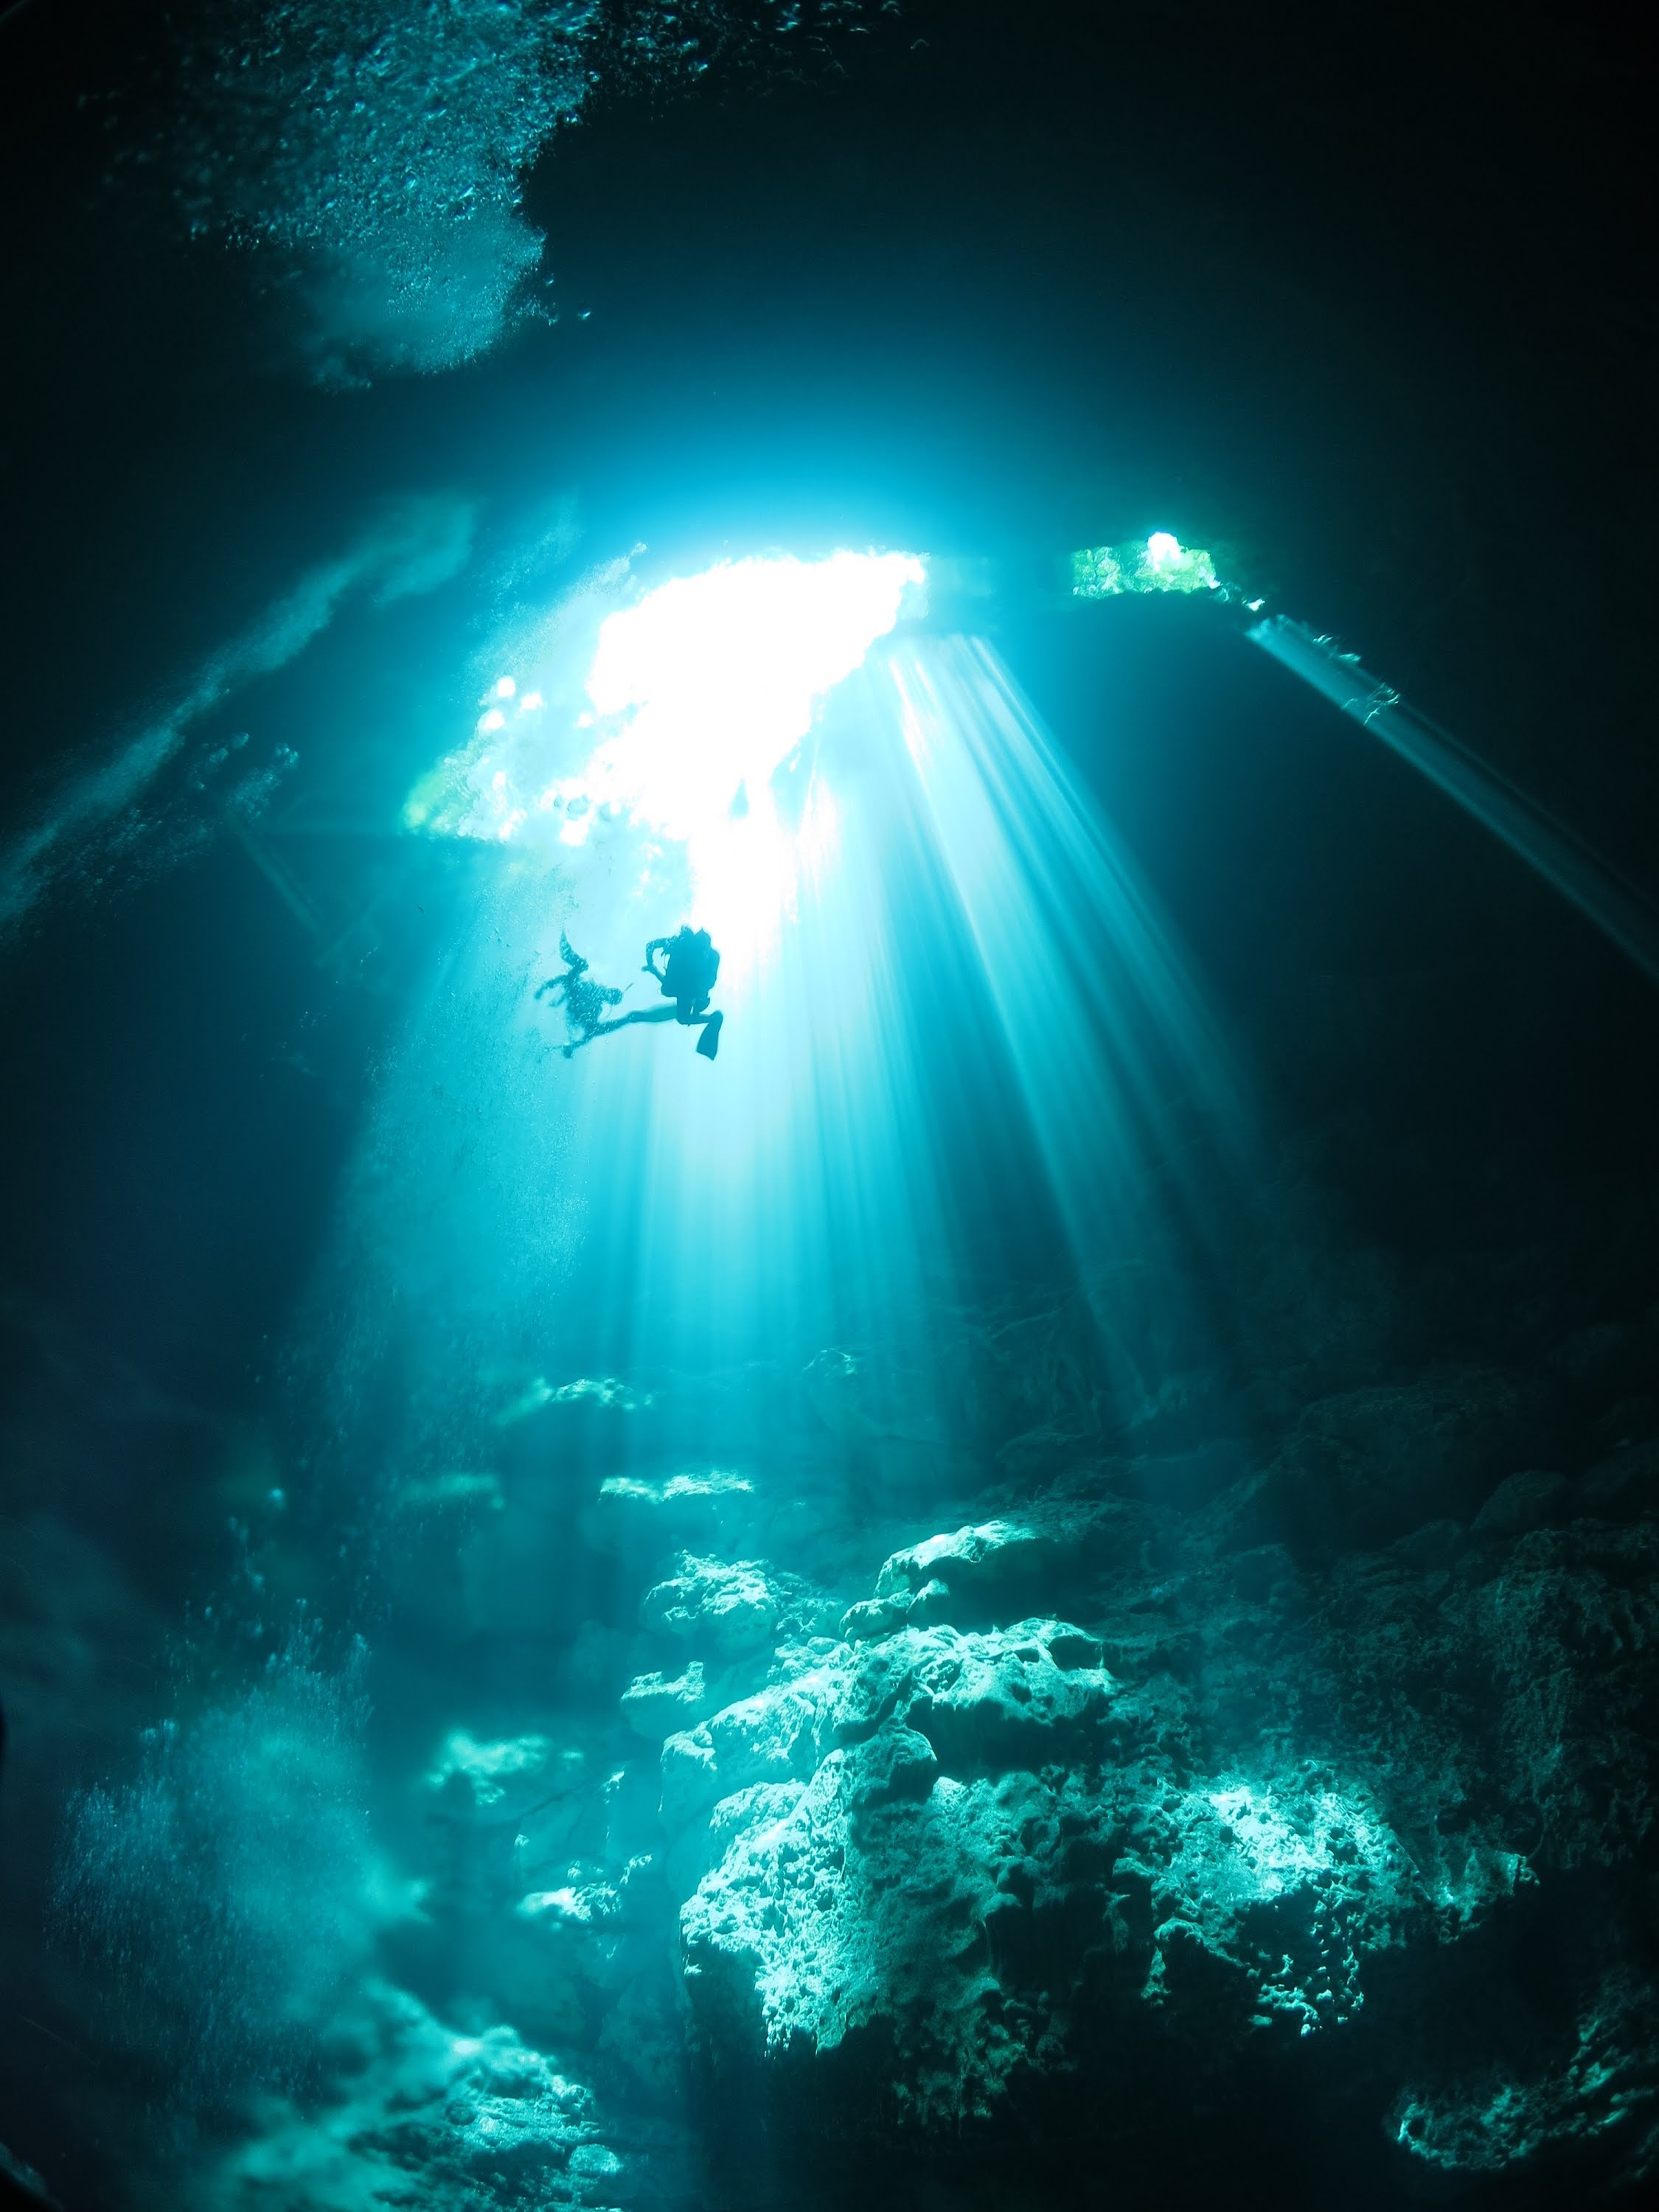 Underwater Caves Wallpapers High Quality | Download Free